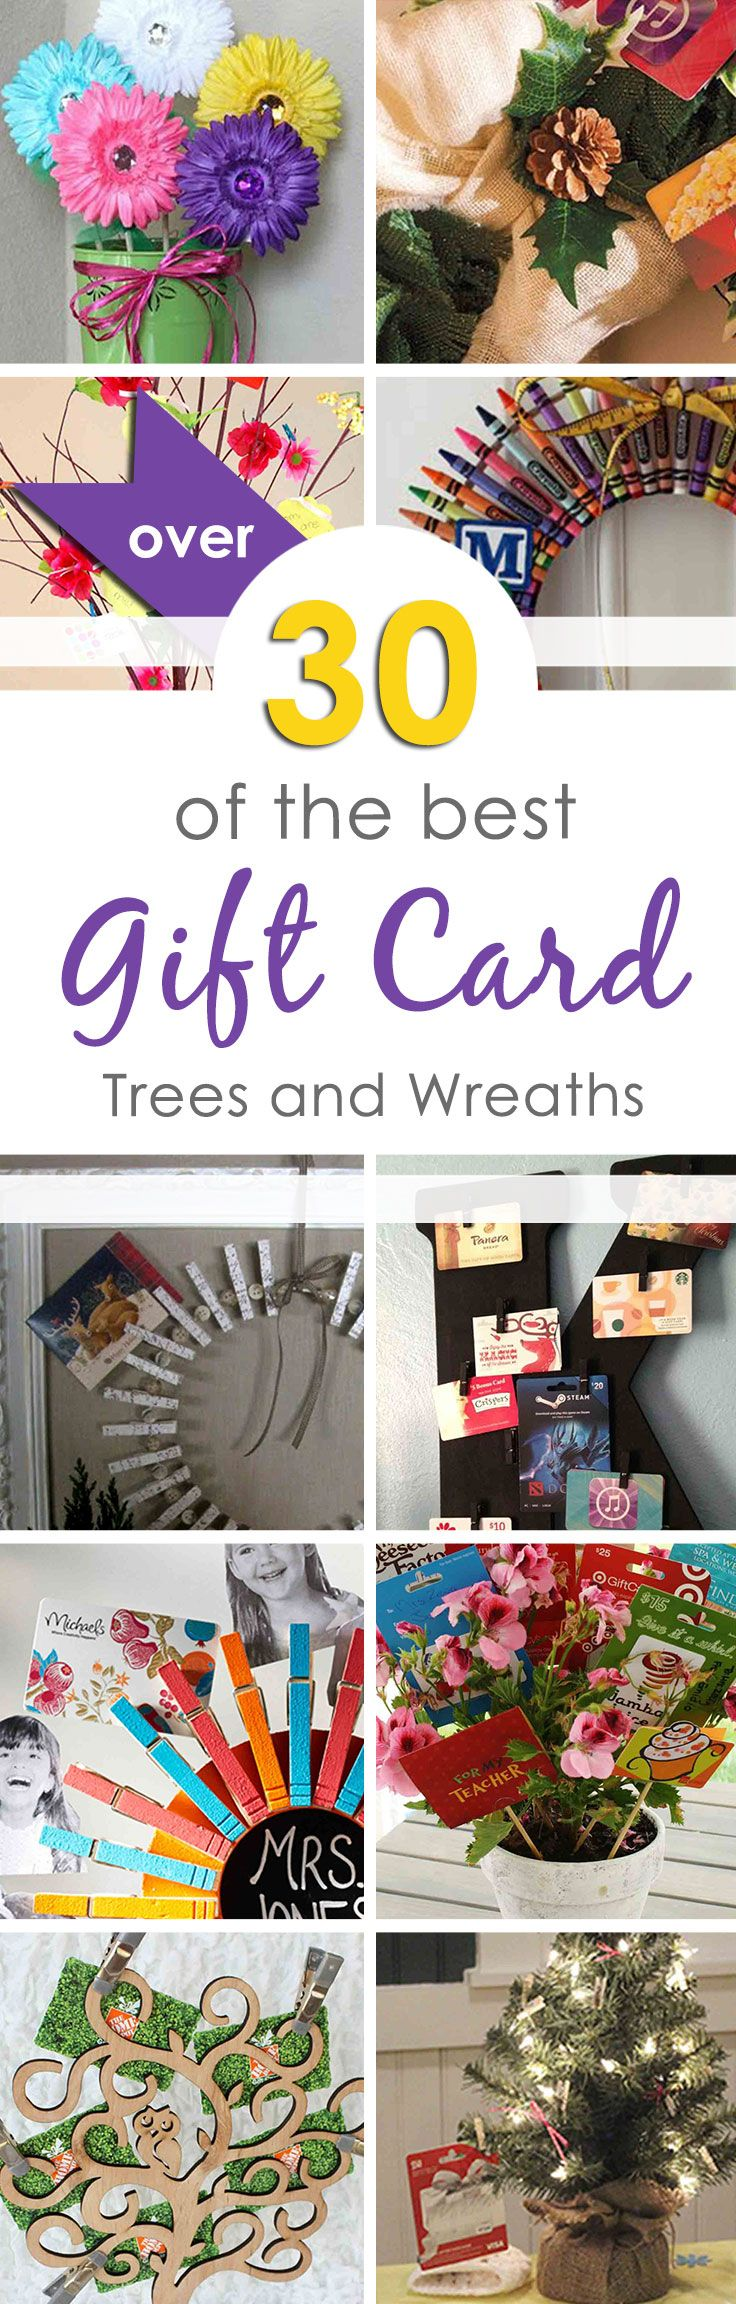 The best gift card tree and gift card wreaths ever pinterest over 30 of the best gift card trees and gift card wreaths i could find negle Image collections